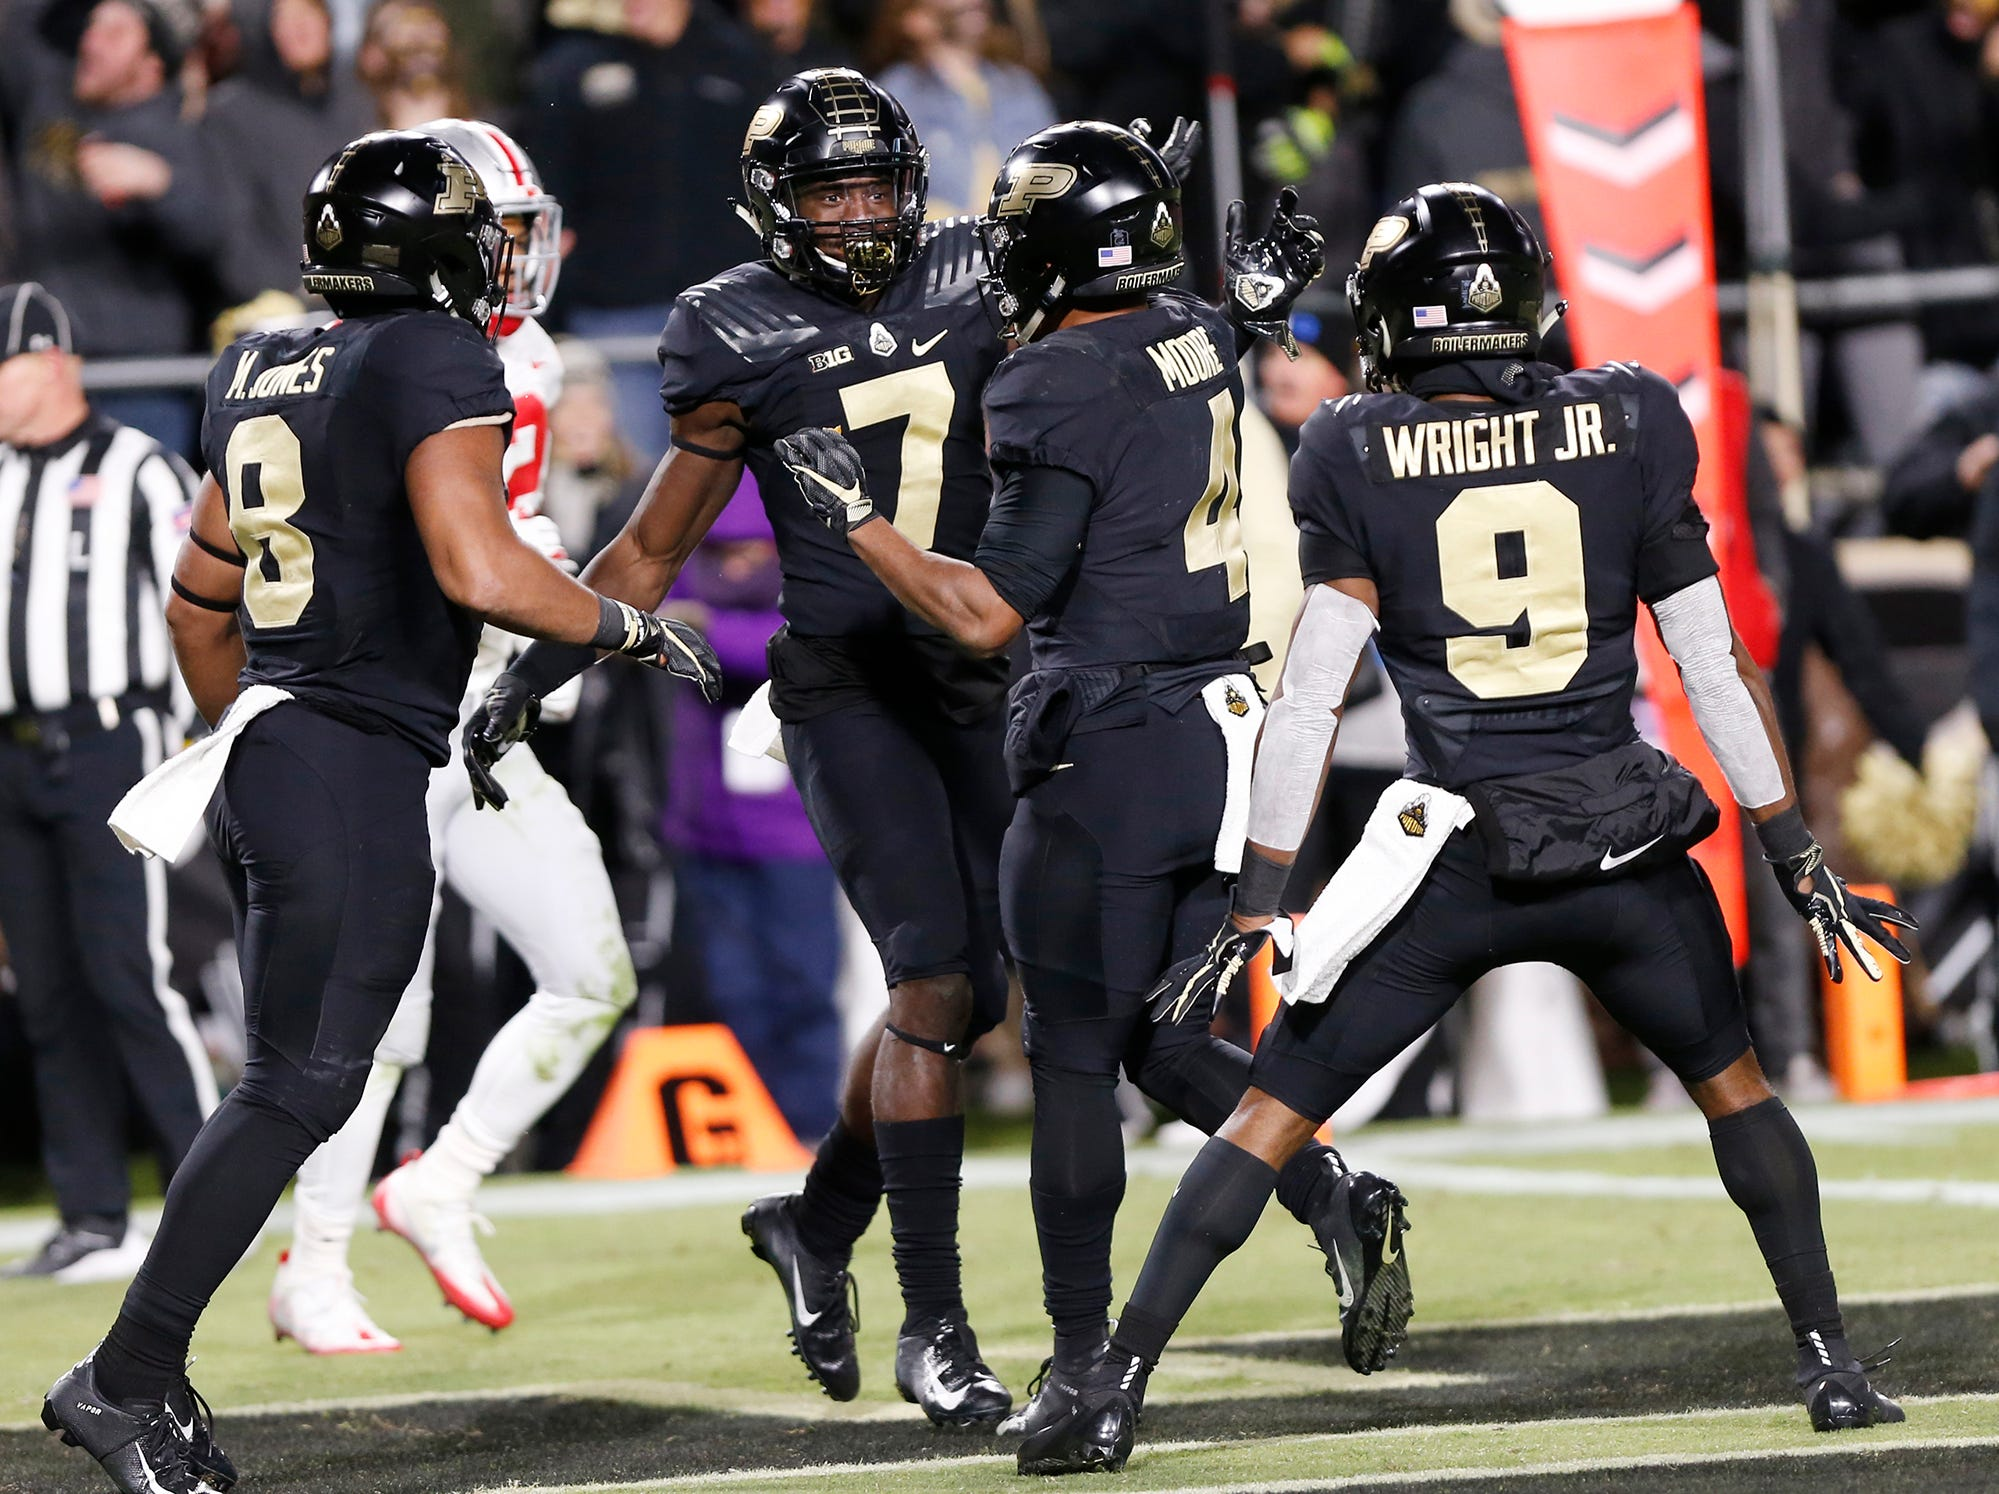 Purdue football selected national team of the week